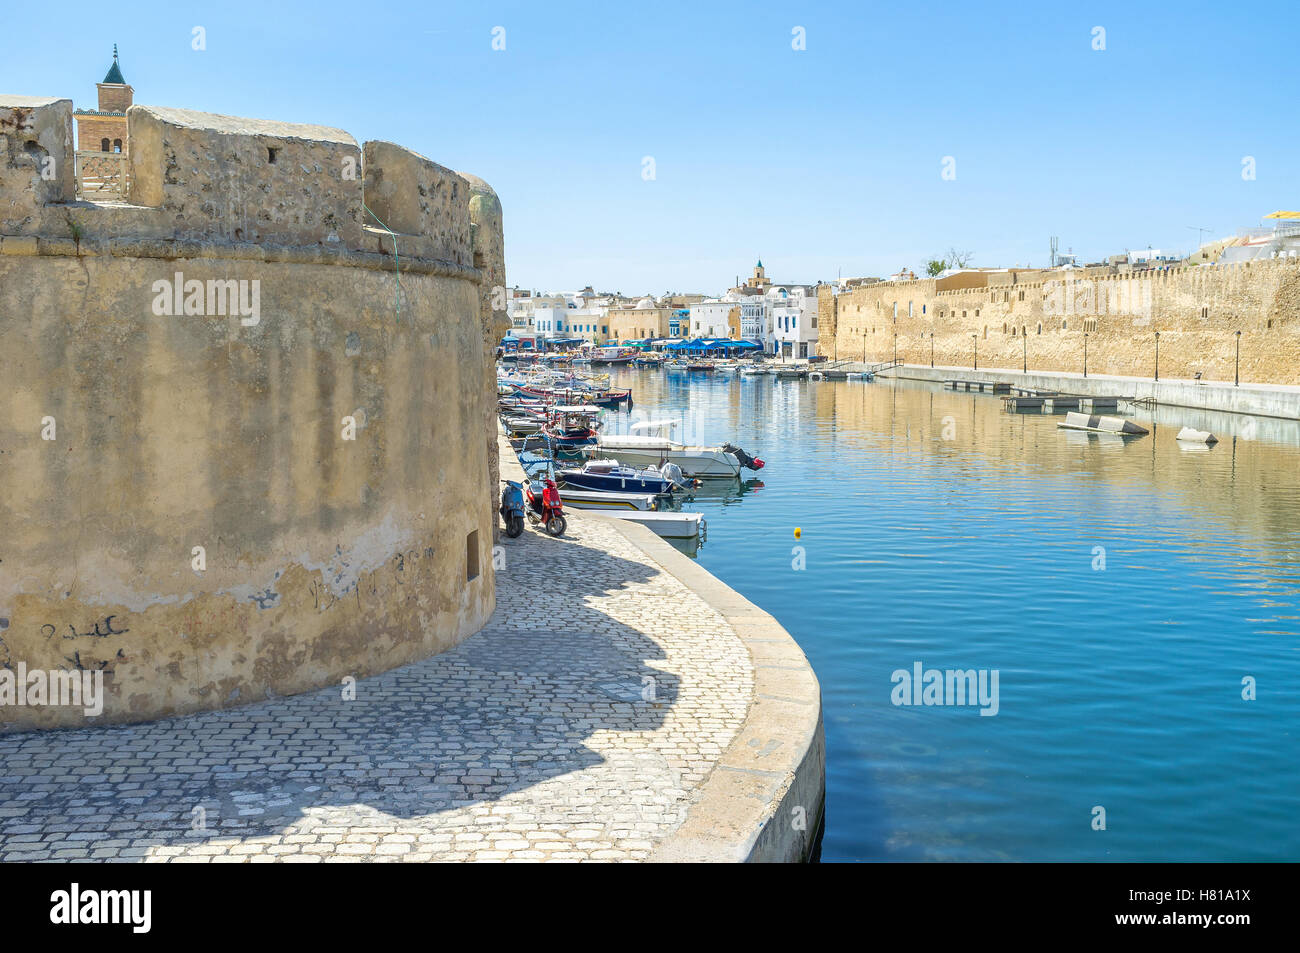 The old fishing port is the heart of Bizerte, so its fishermen's town, Tunisia. - Stock Image